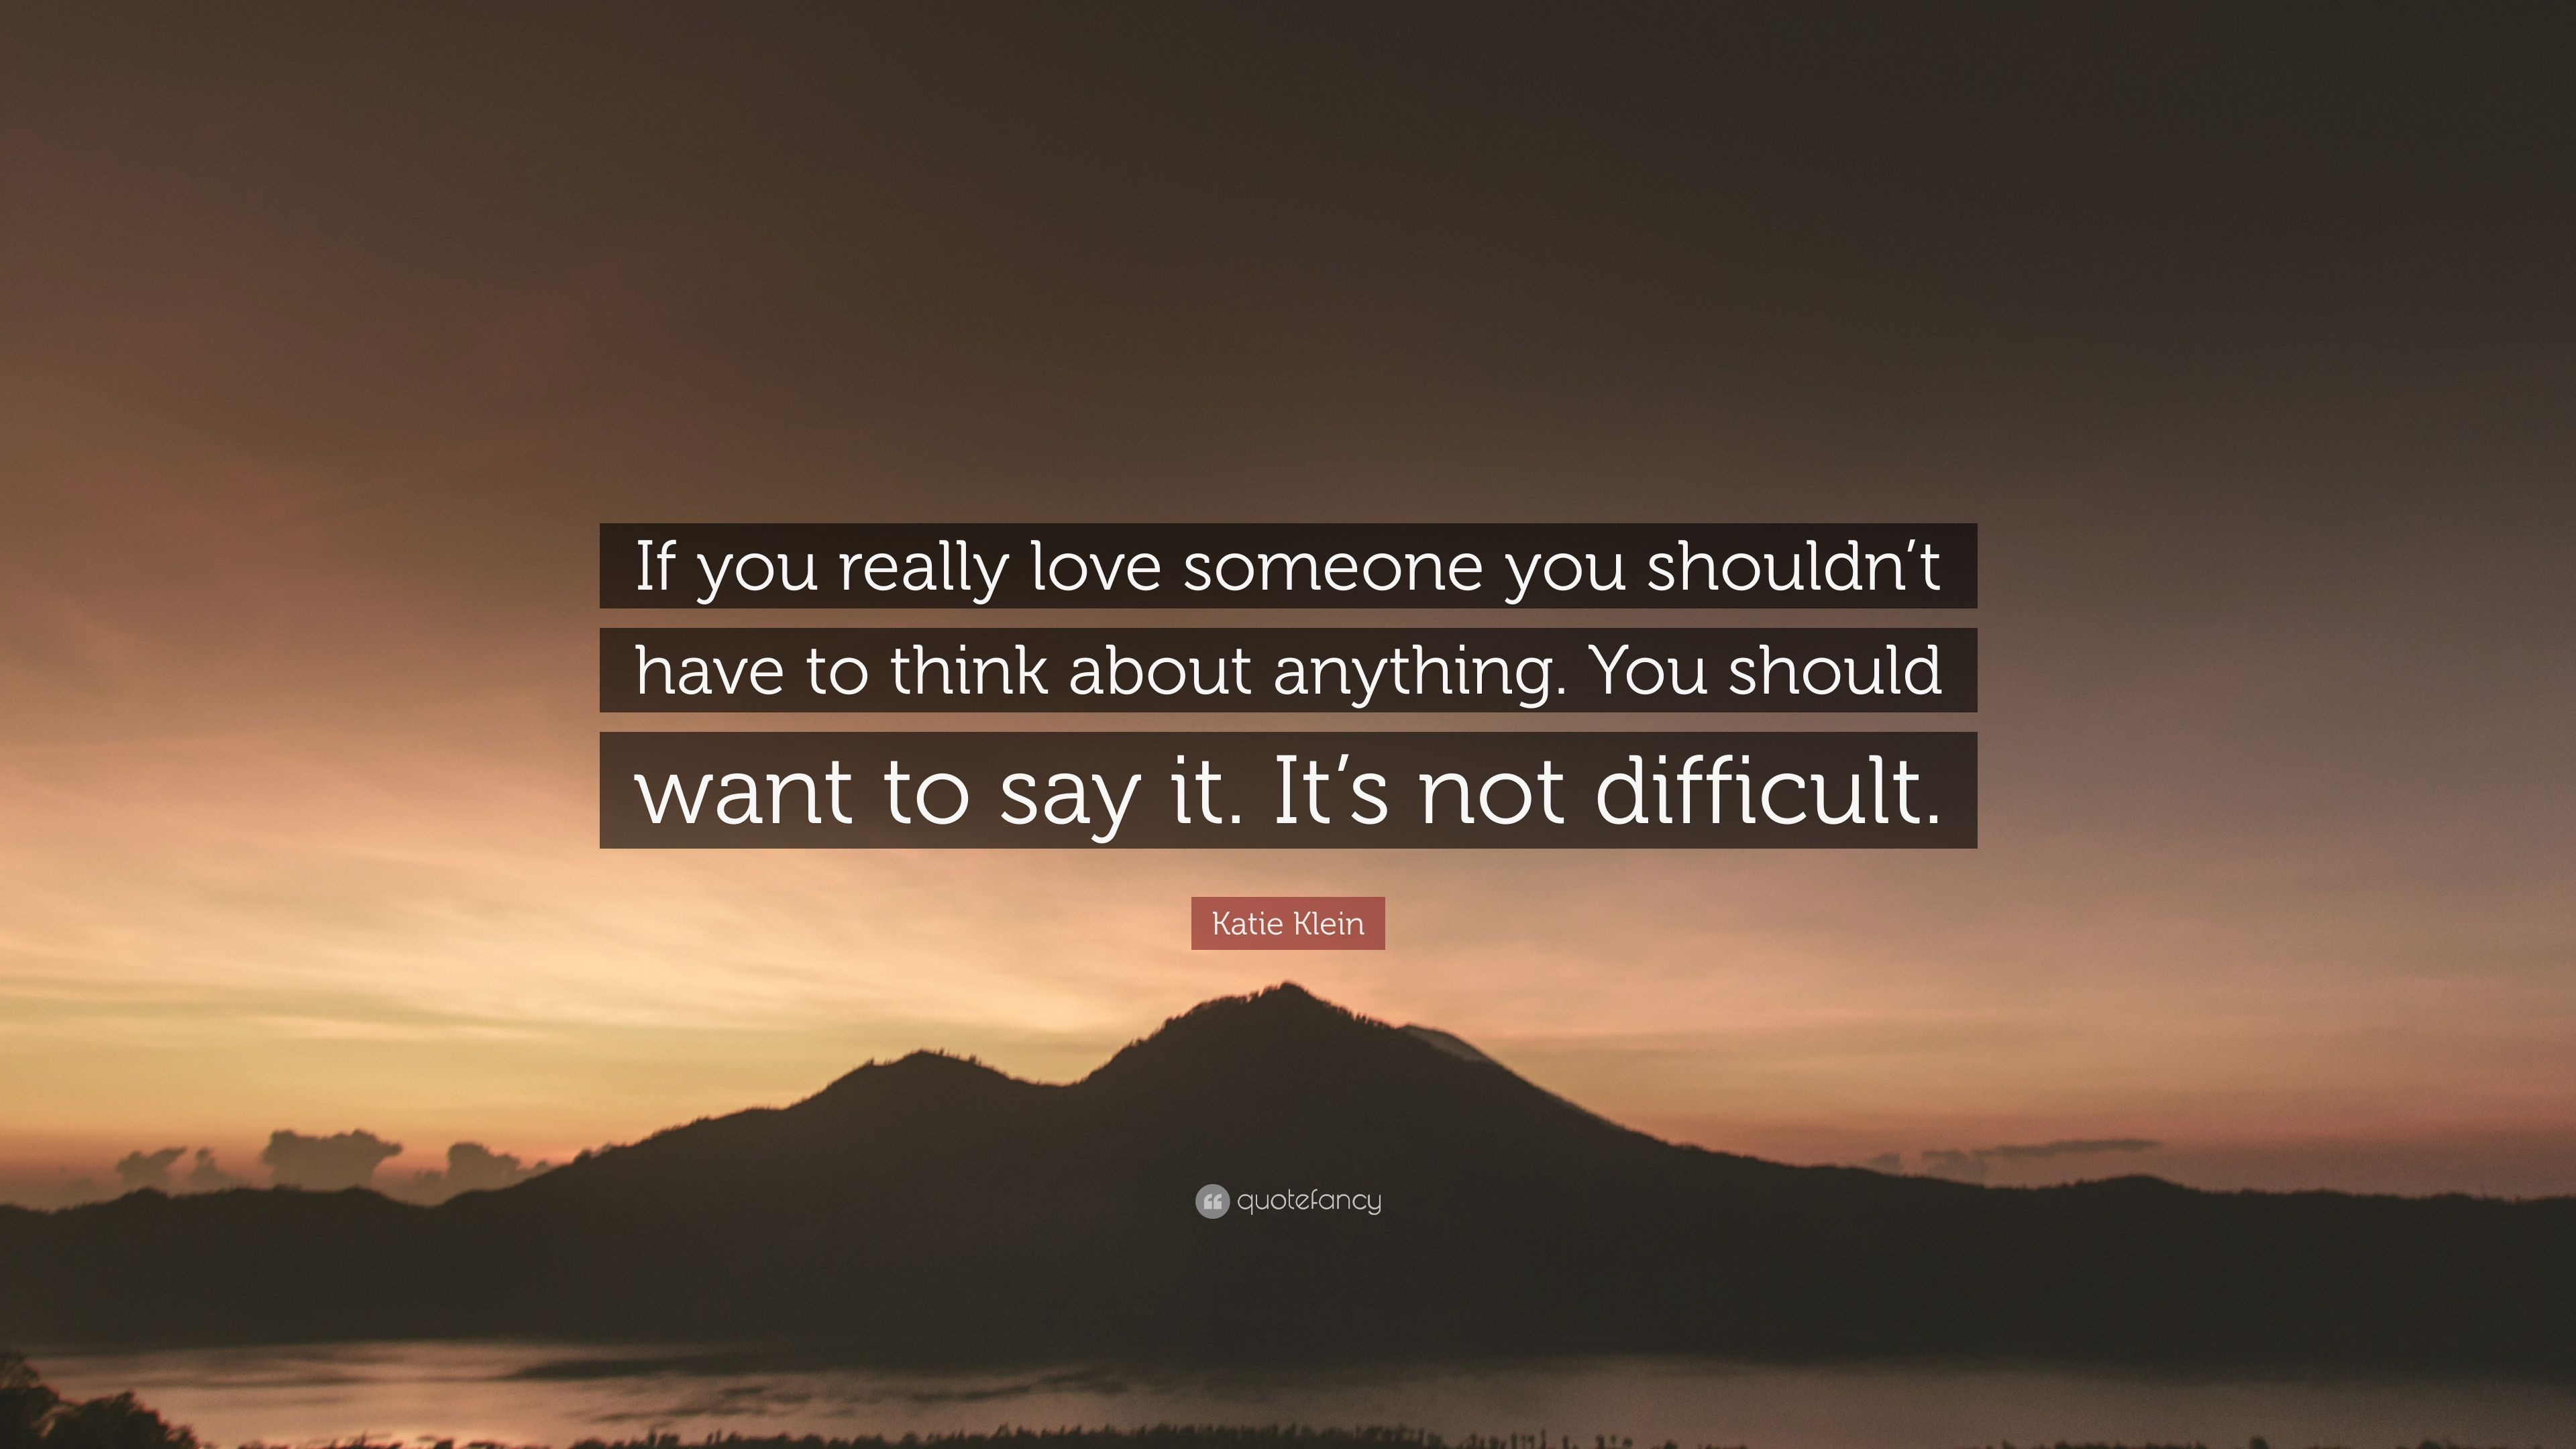 T quotes can loving about you have someone Quotes about